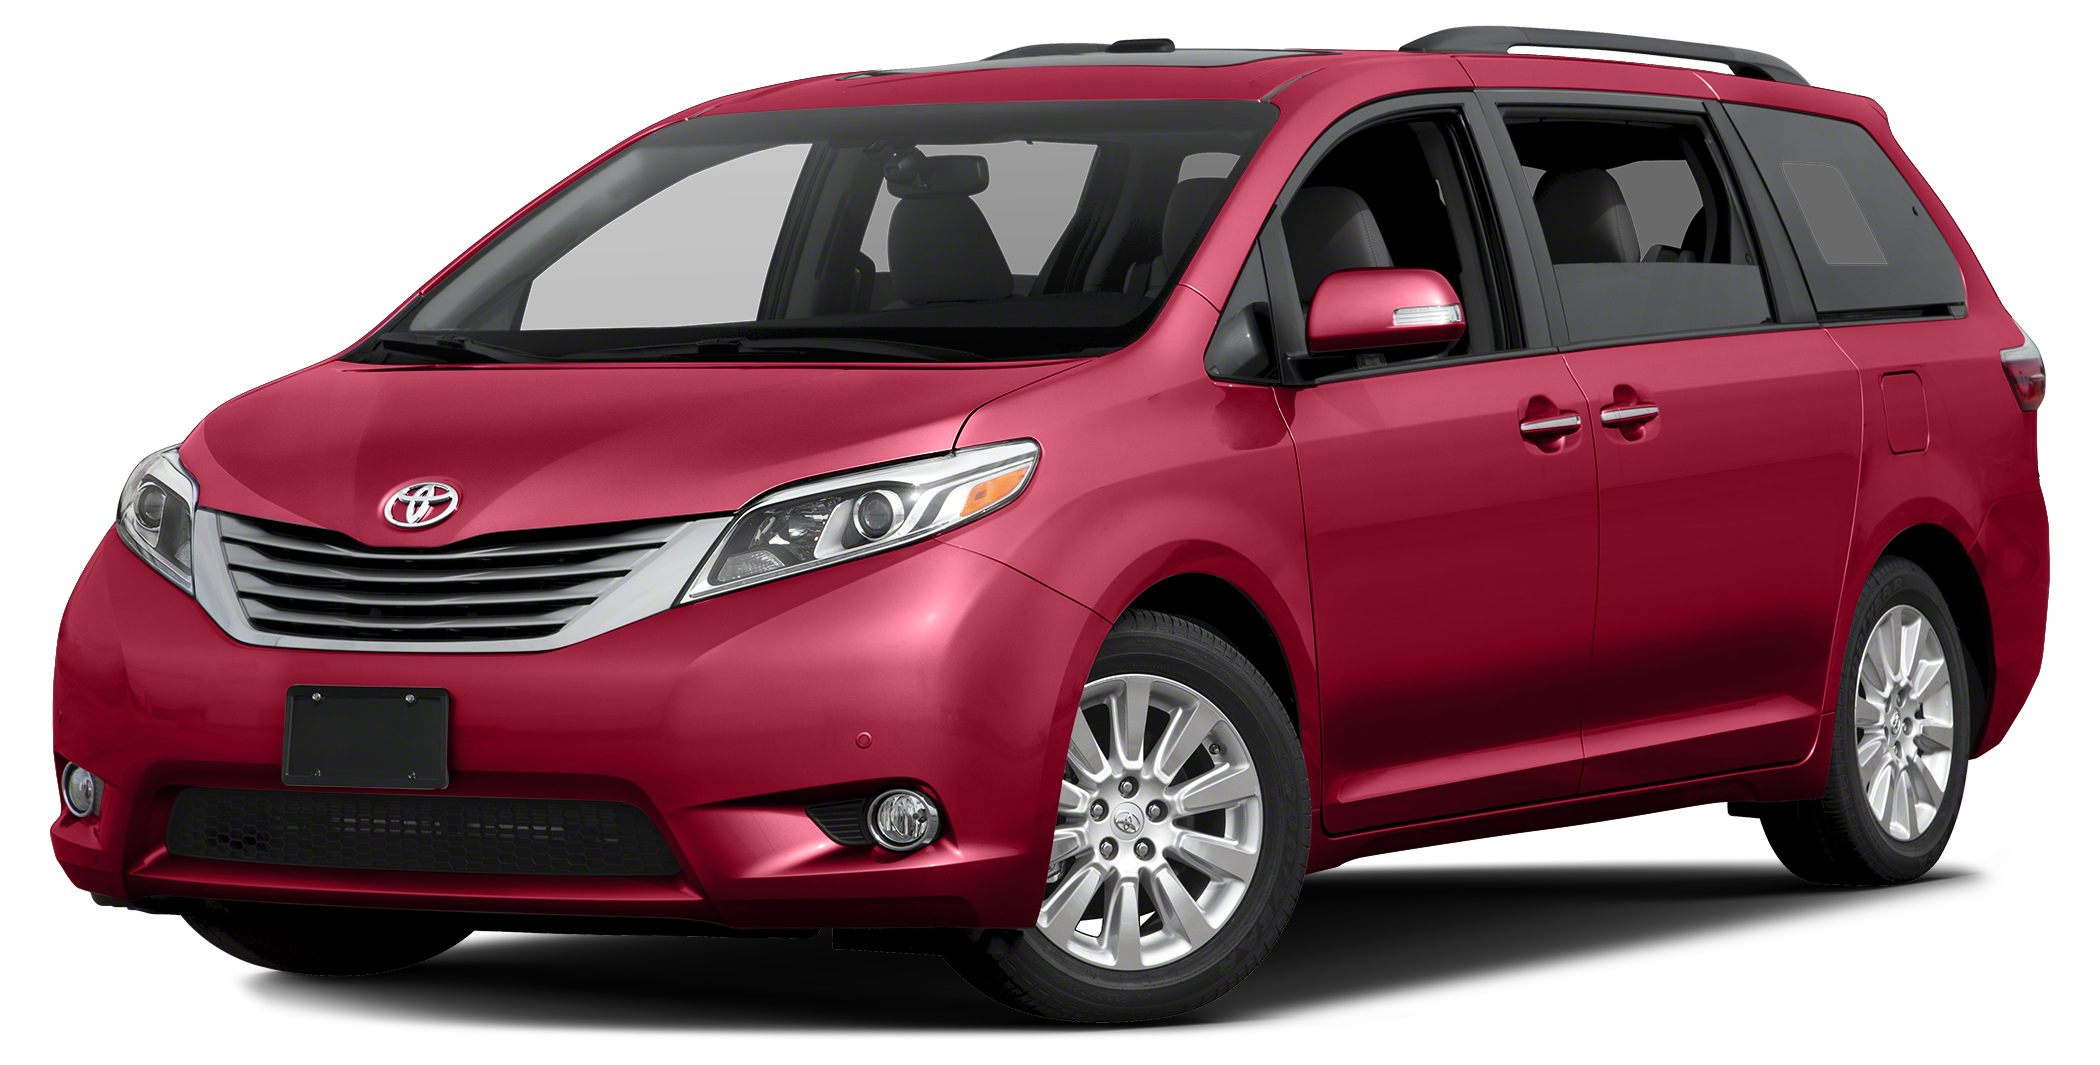 2017 Toyota Sienna Limited Premium 7 Passenger Heated Leather Seats NAV DVD 3rd Row Seat Sunro